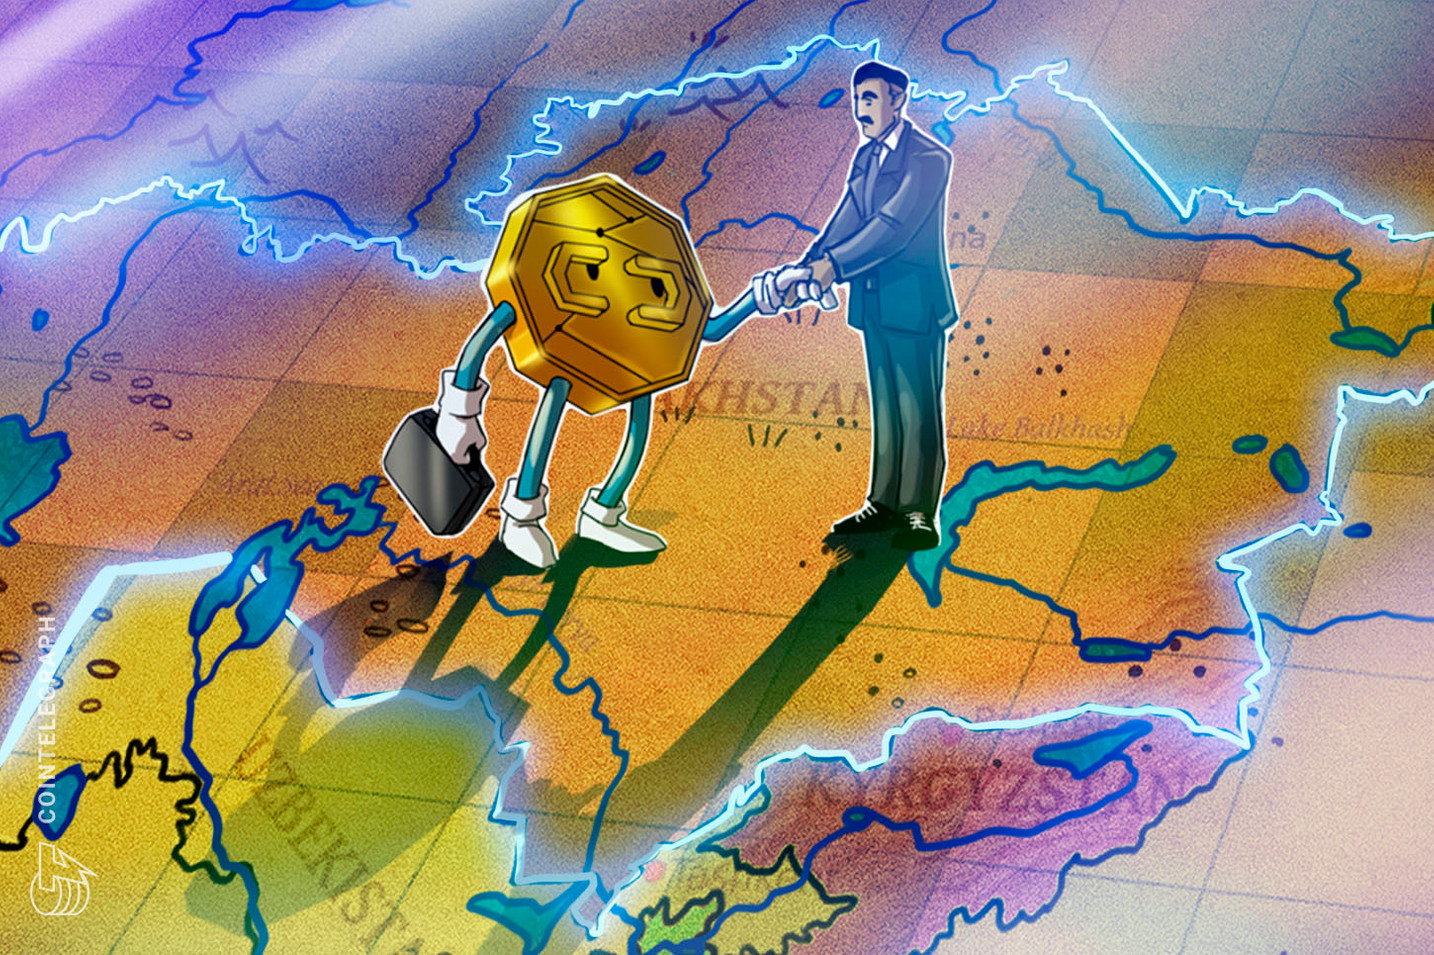 Kazakhstan opens public consultation for central bank digital currency